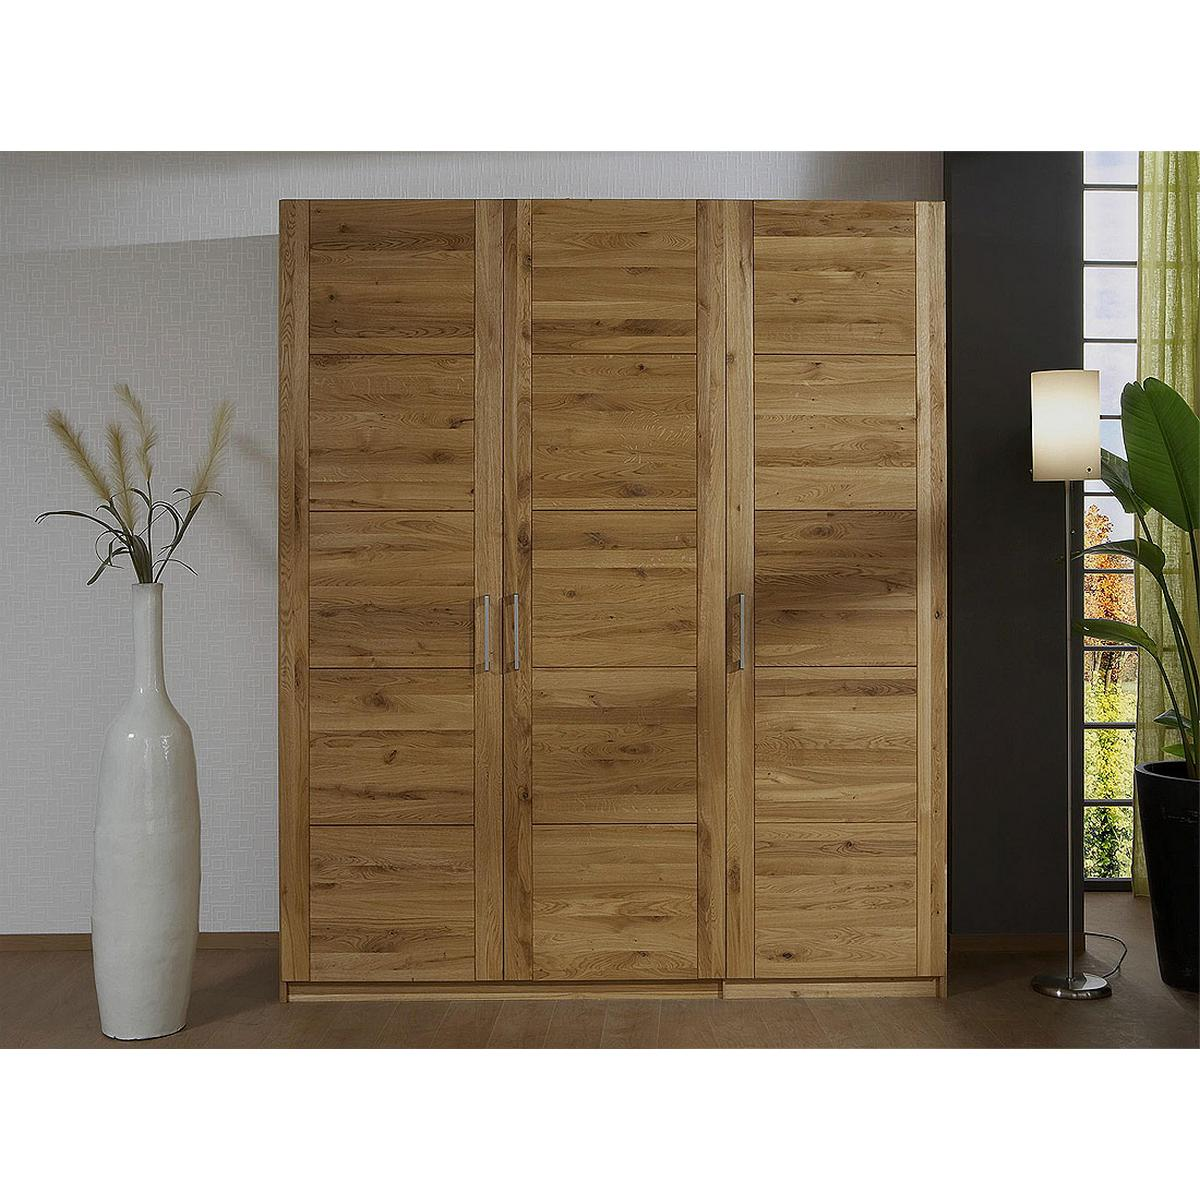 20 mm bold zusammenfassung echtholz kleiderschrank oxford tuch kleiderschrank verst rkung. Black Bedroom Furniture Sets. Home Design Ideas